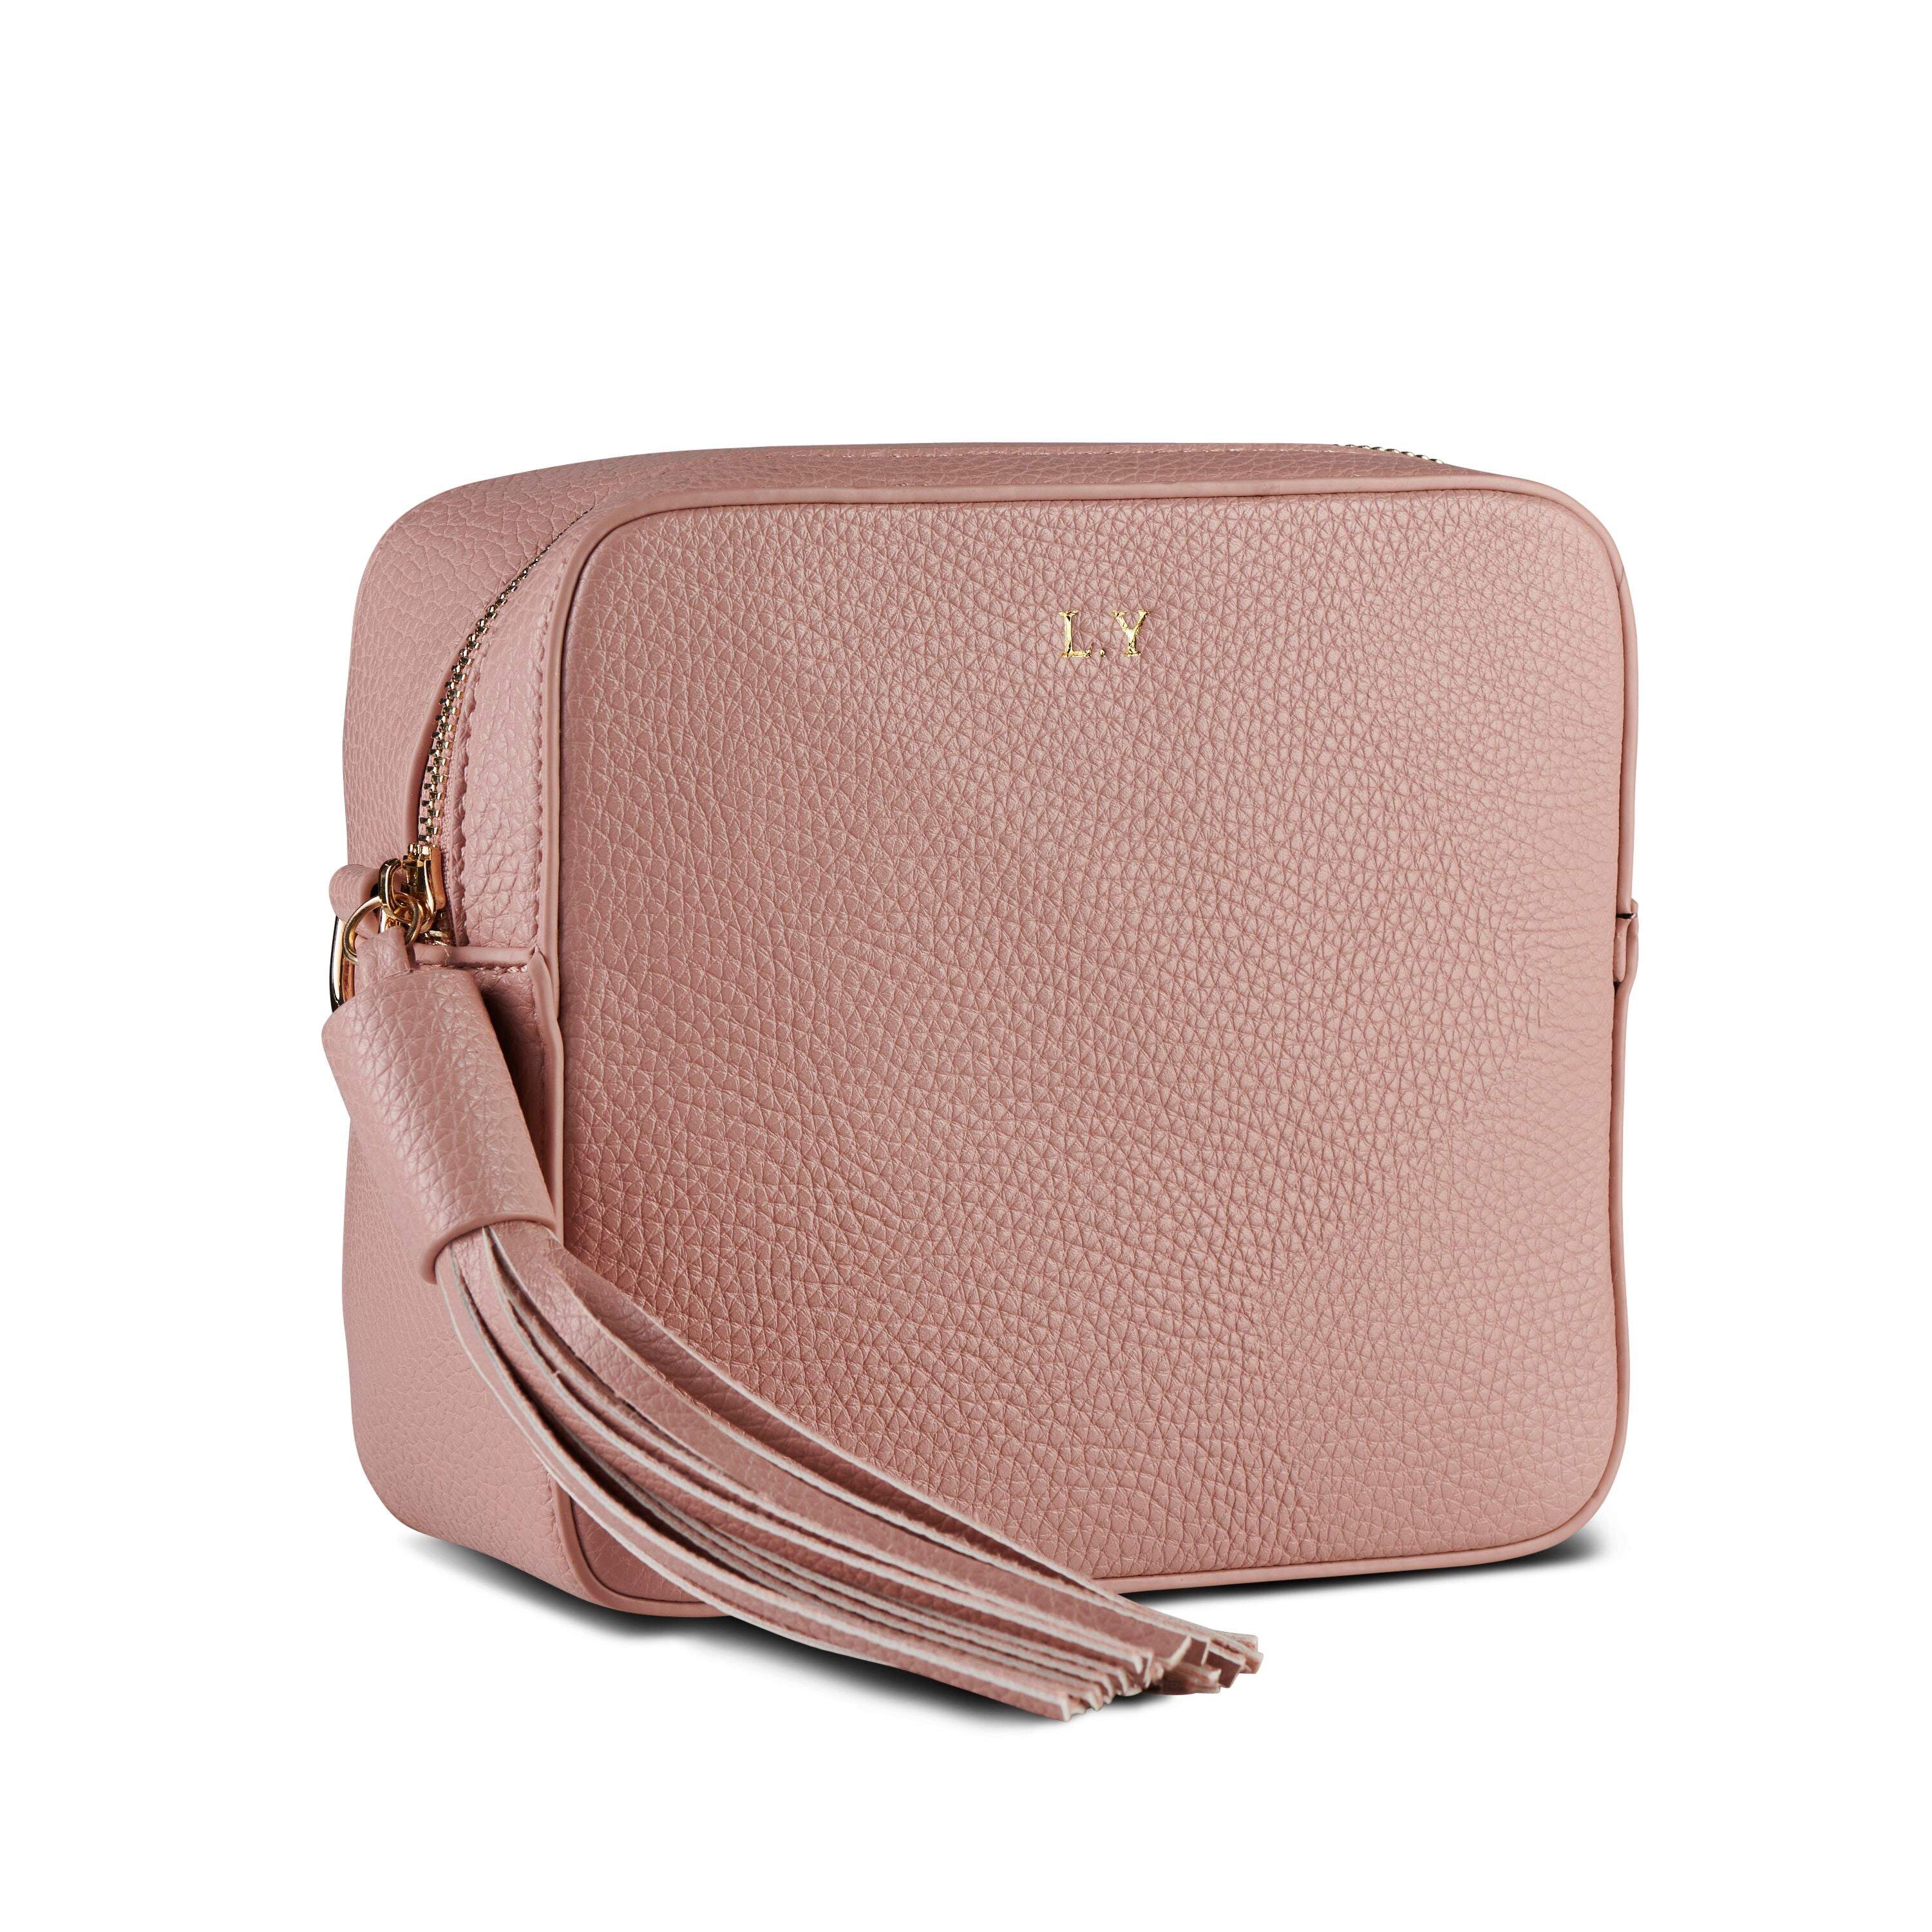 Blush Pink Vegan Leather Cross Body Bag